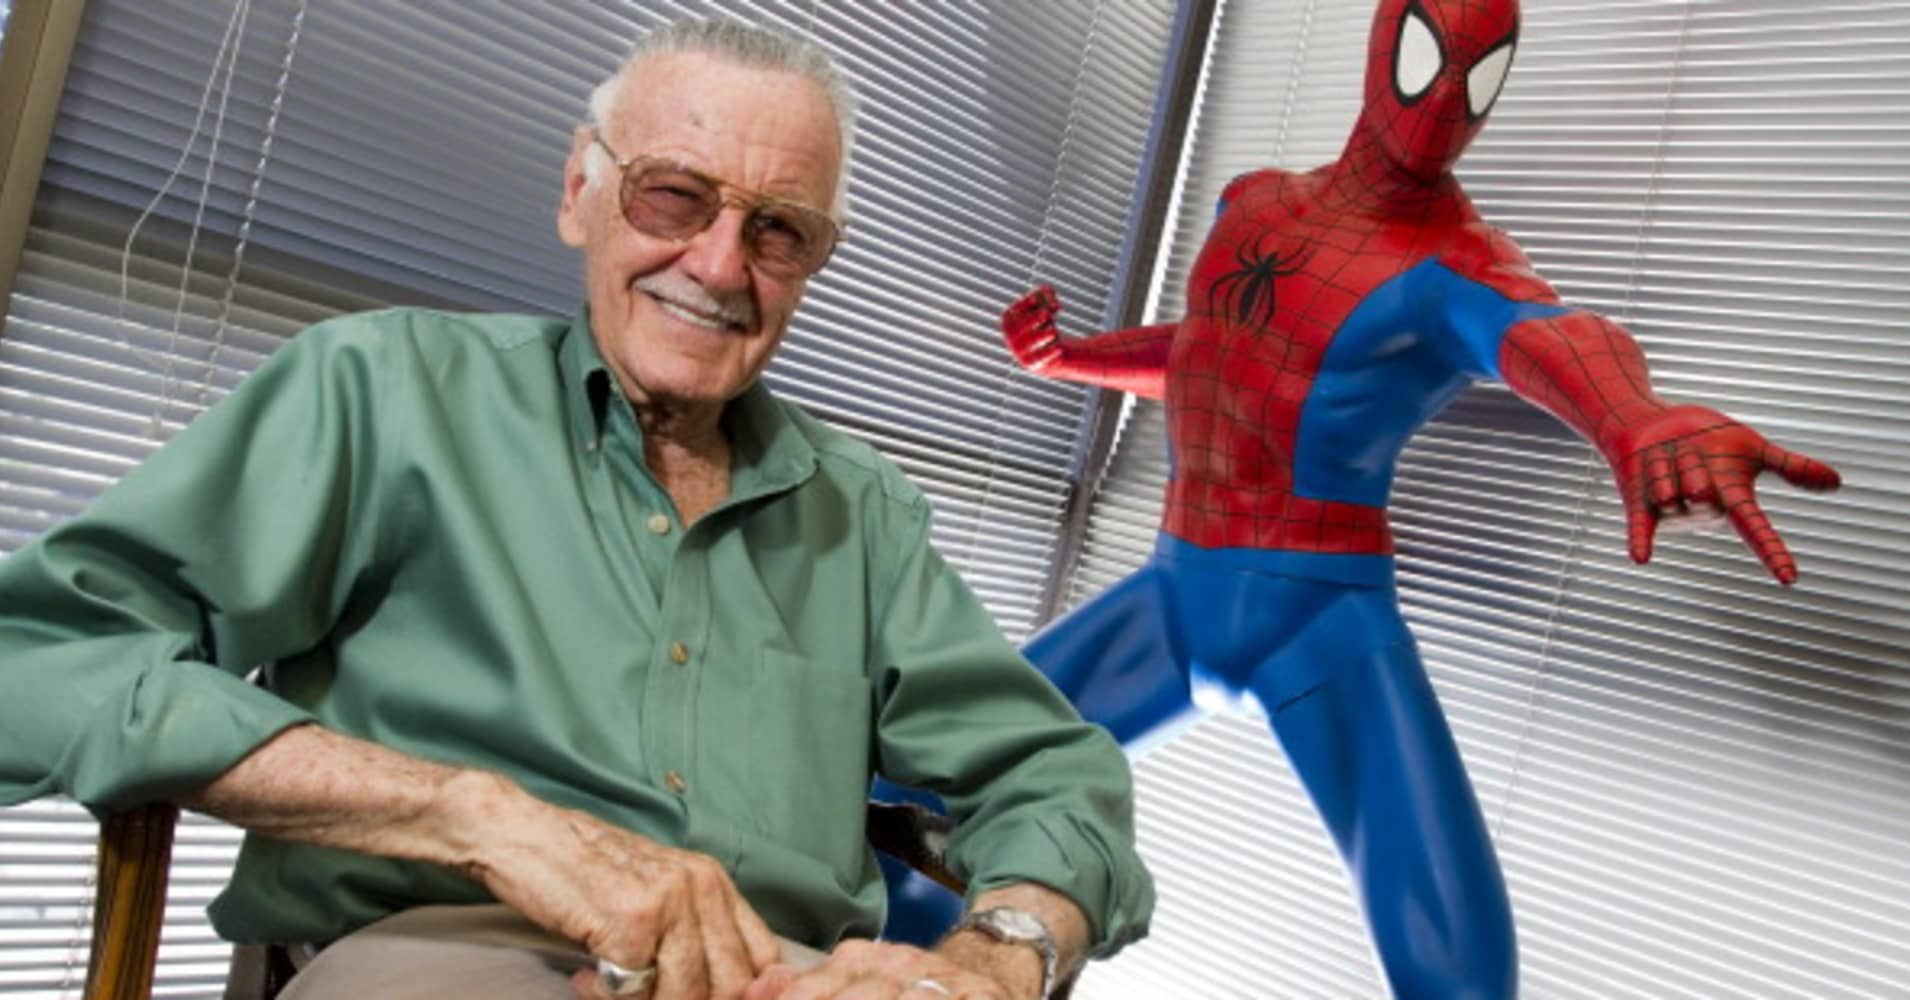 3 pieces of priceless advice from Marvel Comics legend Stan Lee